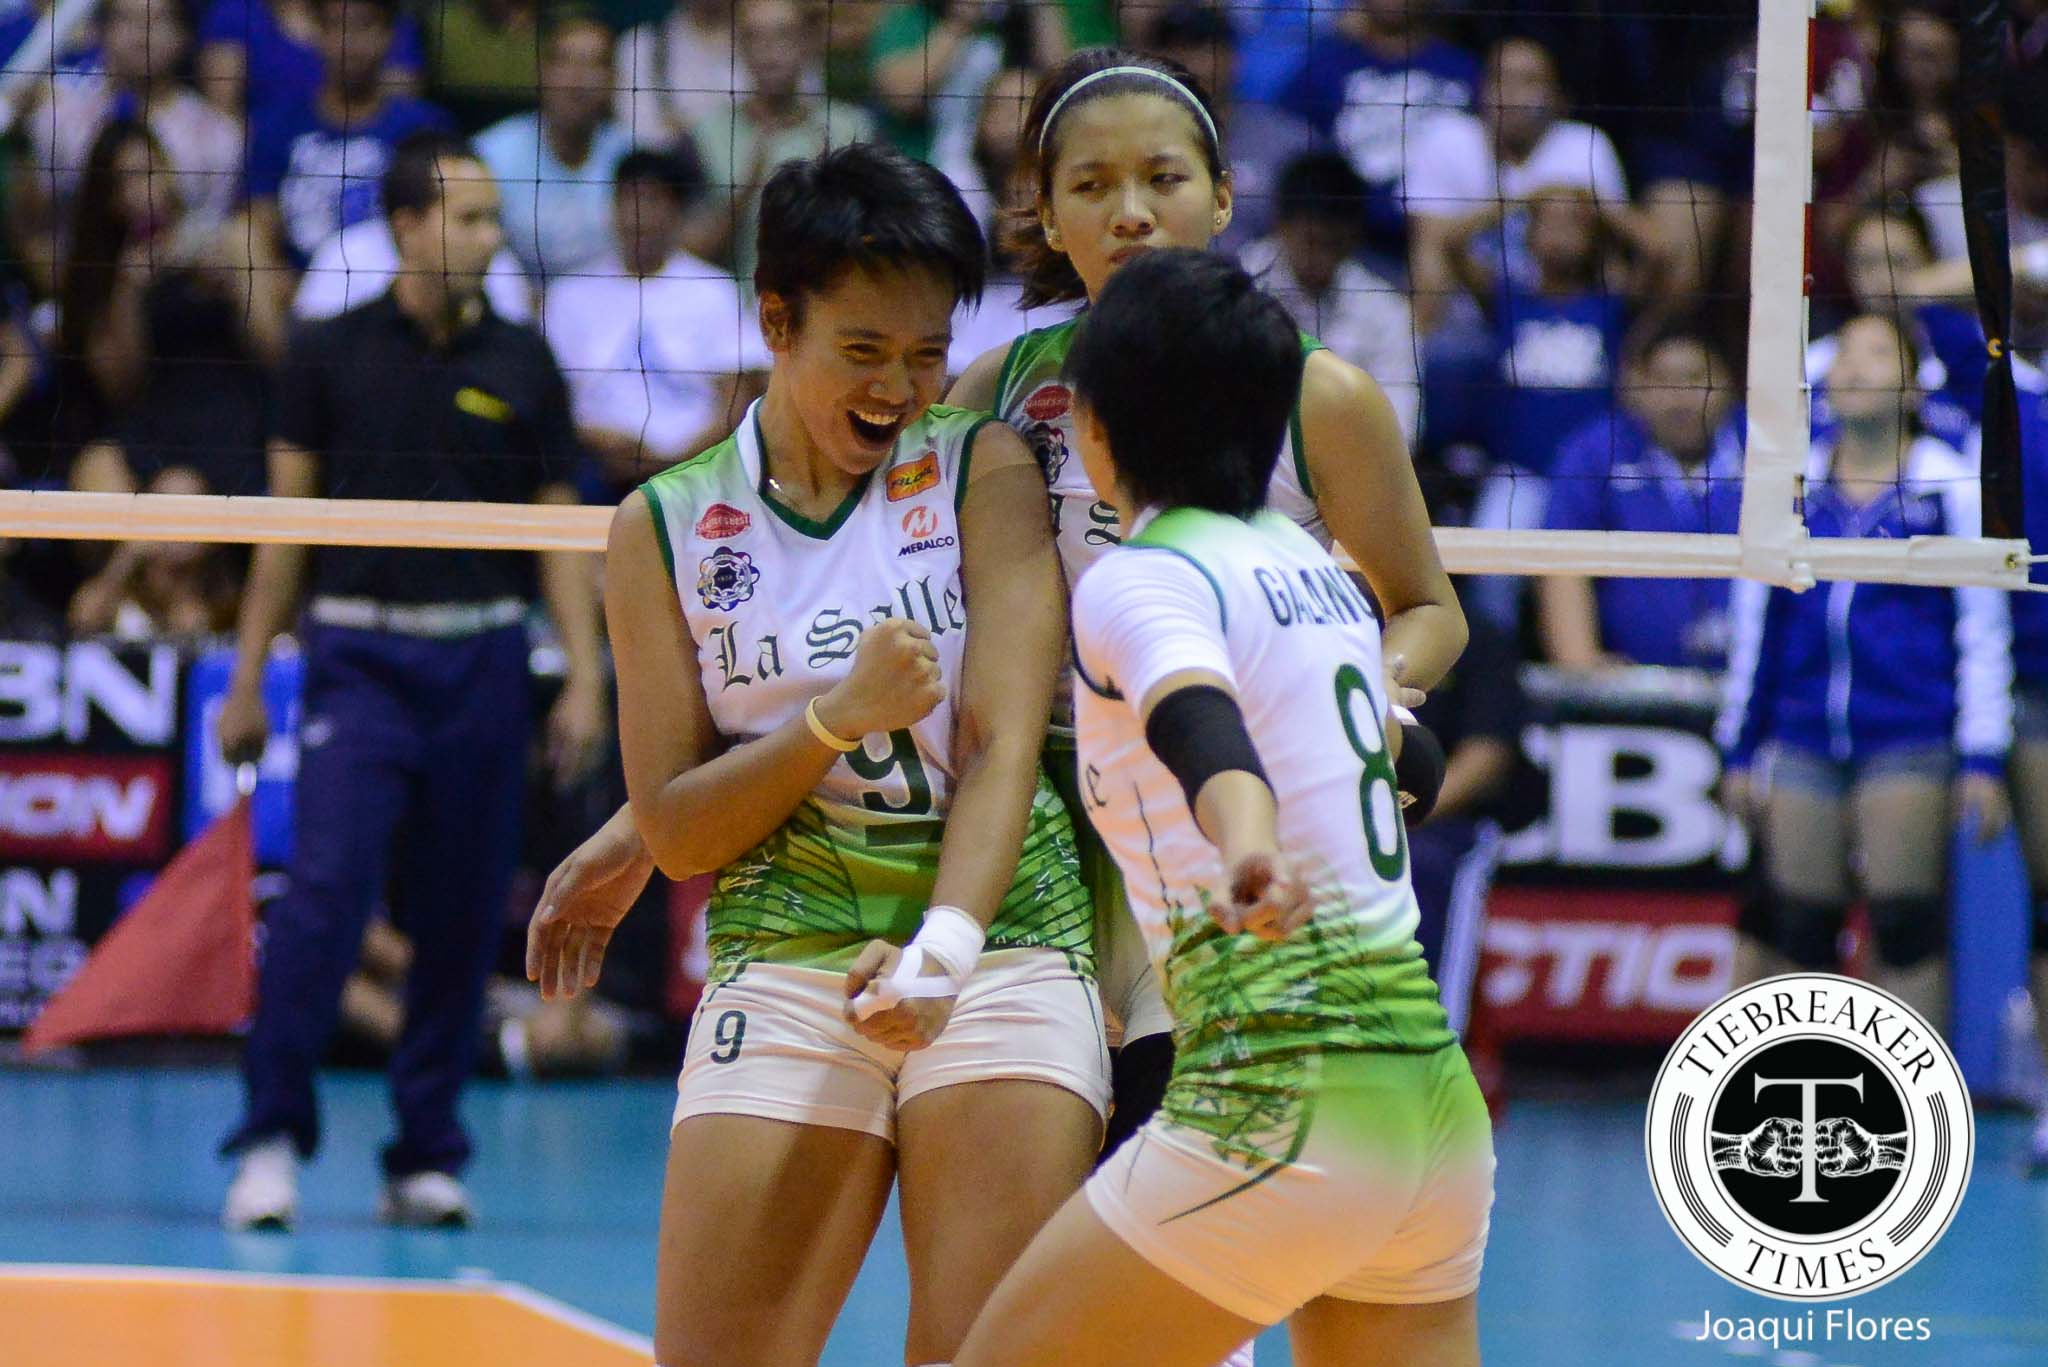 Tiebreaker Times Fajardo takes control in La Salle's most crucial match DLSU News UAAP Volleyball  UAAP Season 78 Women's Volleyball UAAP Season 78 Kim Fajardo DLSU Women's Volleyball